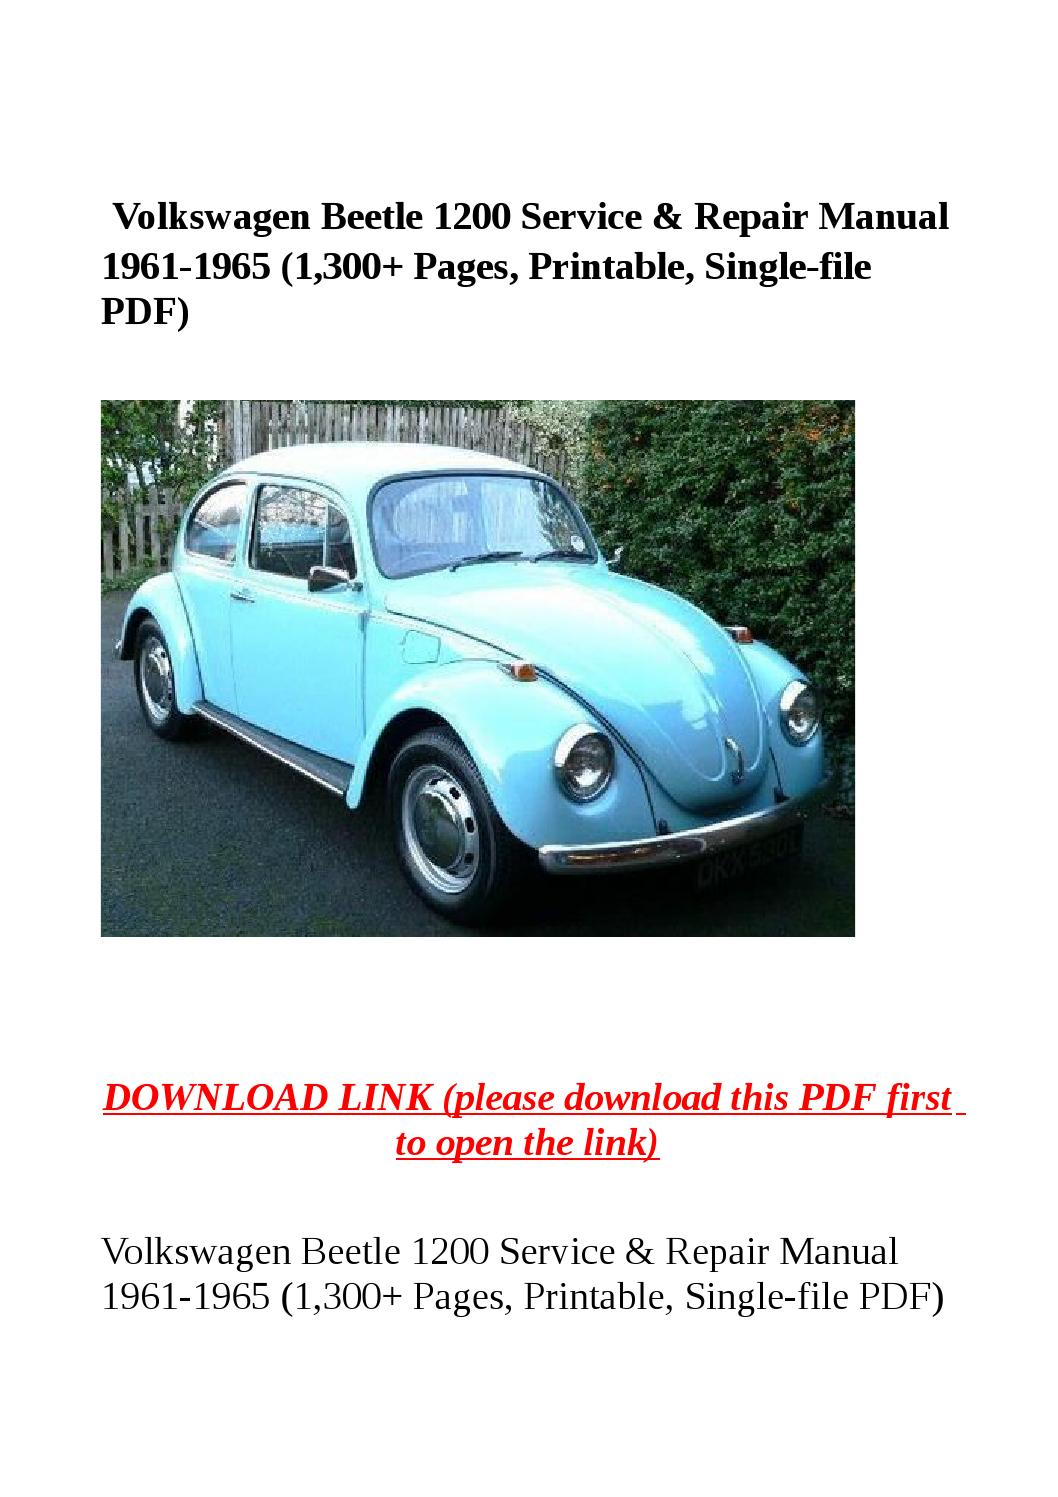 Volkswagen Beetle 1200 Service Repair Manual 1961 1965 1300 And Karmann Ghia Engine Electrical System Troubleshooting Pages Printable Single File Pdf By Steve Issuu